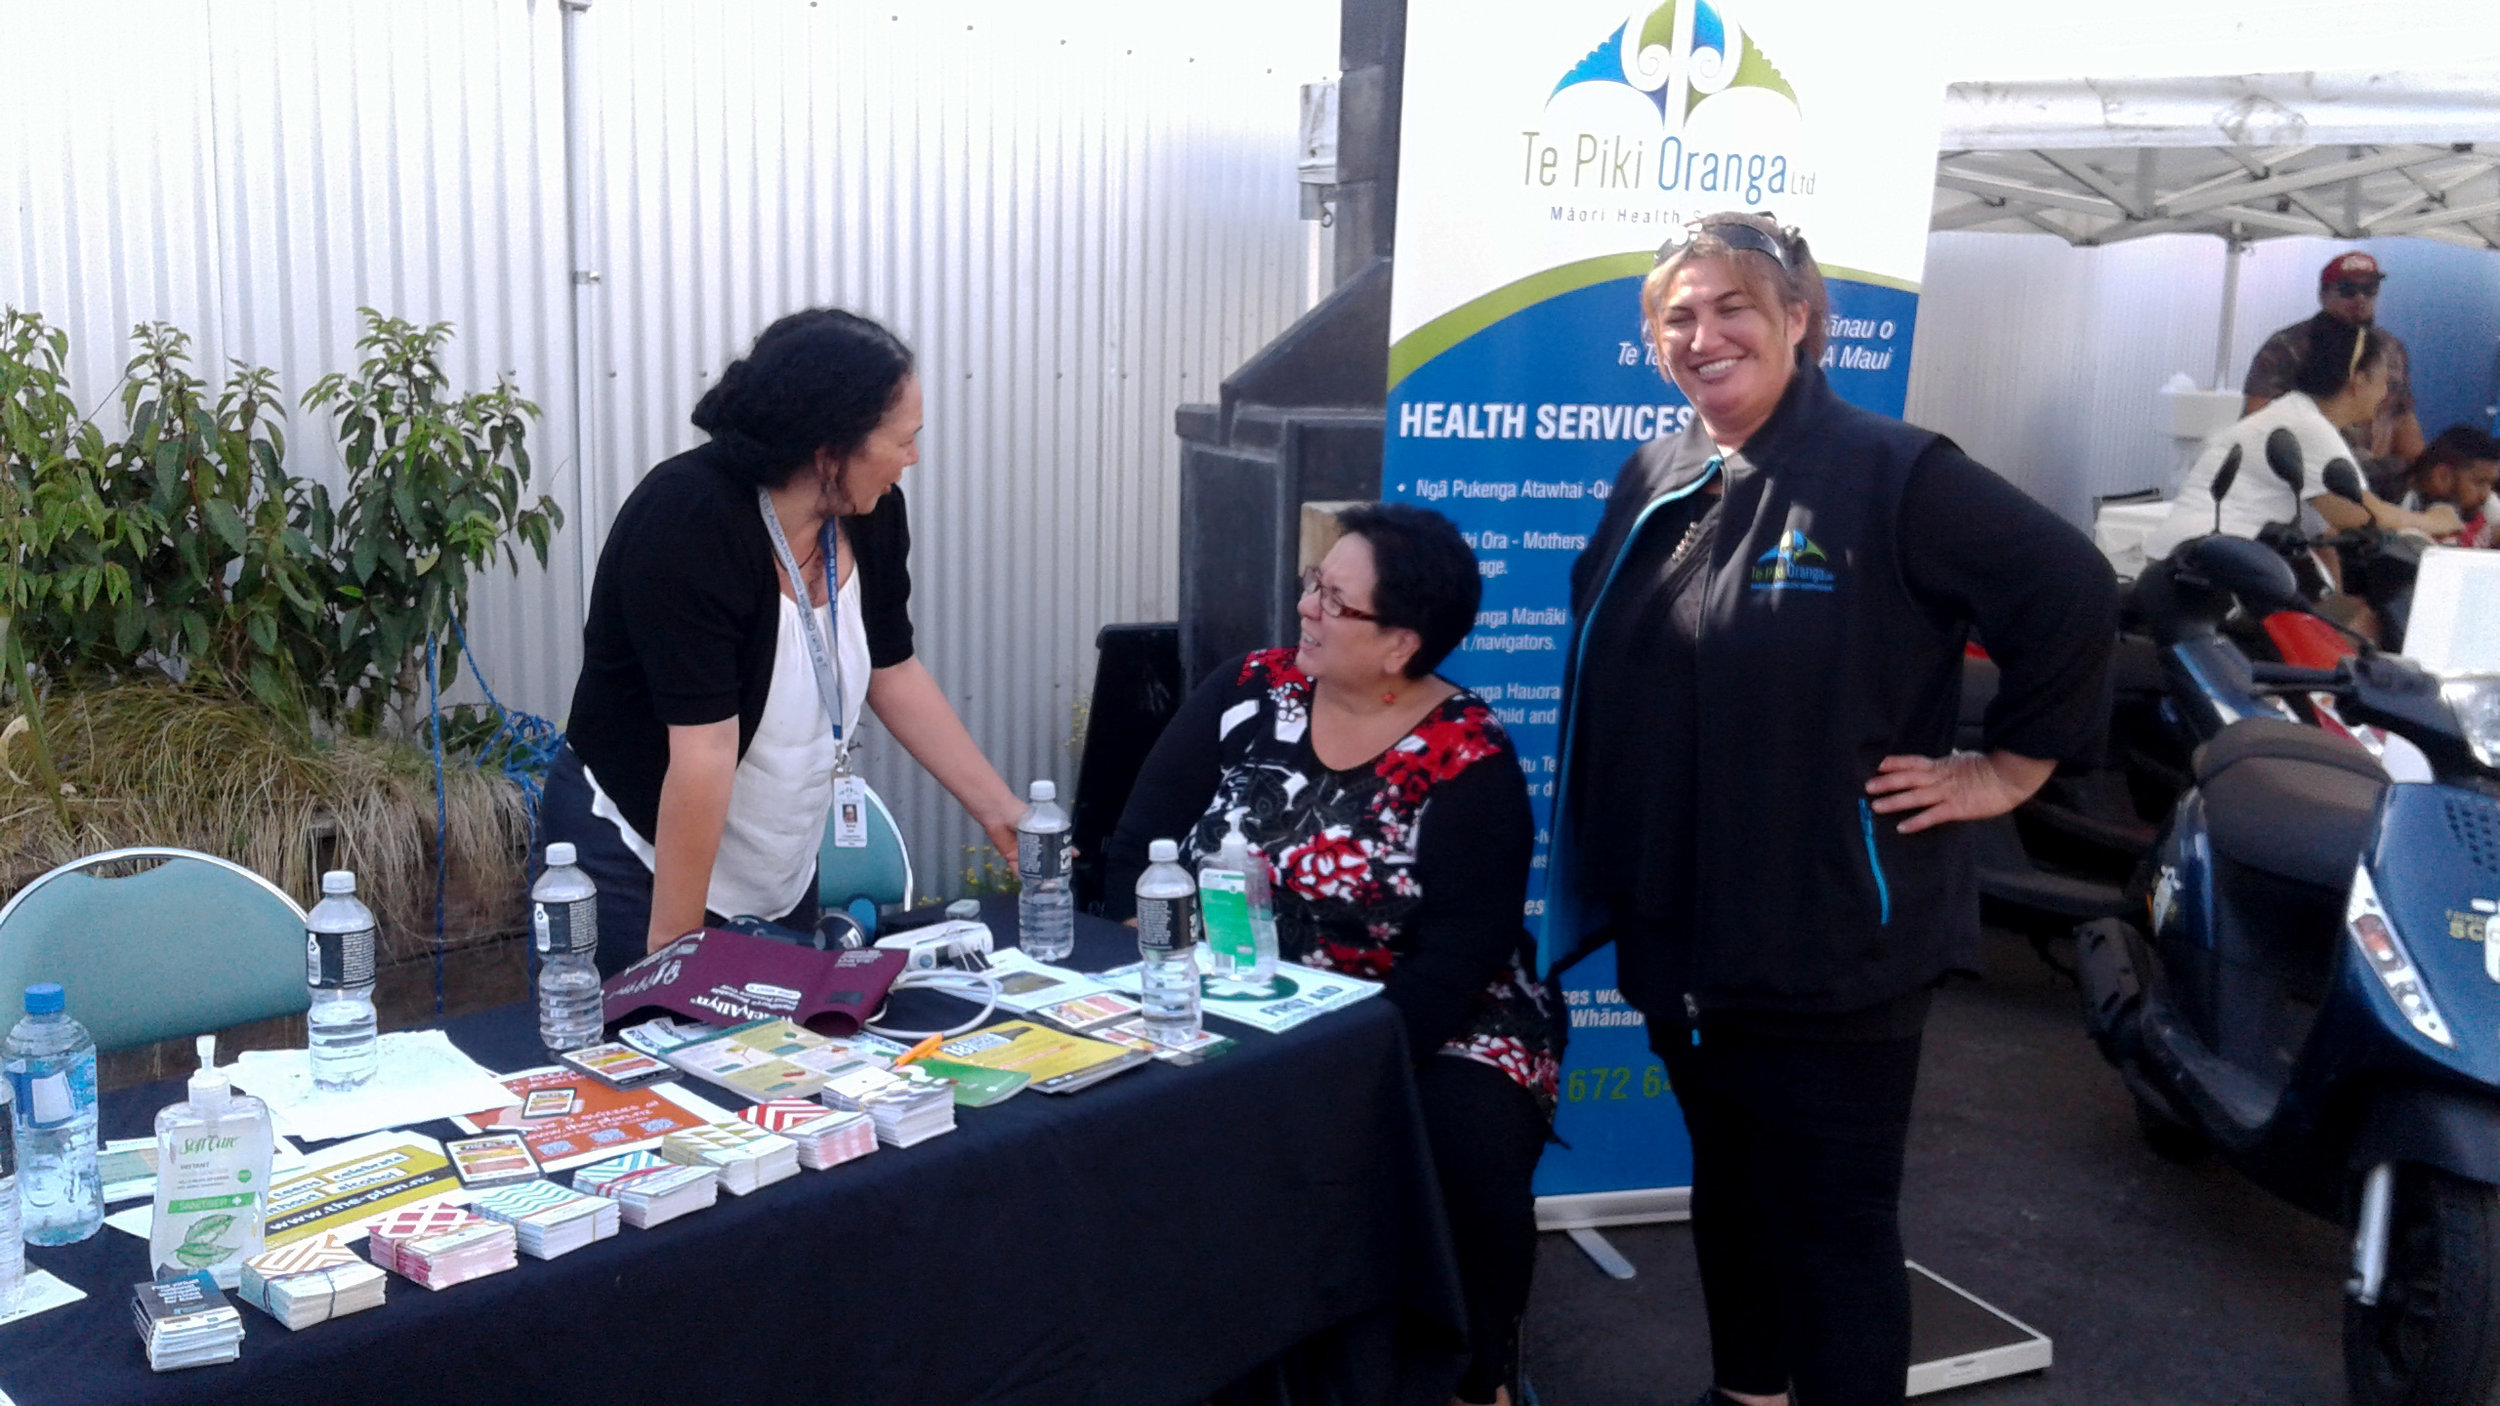 TPO nurse Marissa Scott talks with Rayma-Lee Kotu with AOD Clinician Debbie Tauwhare's support